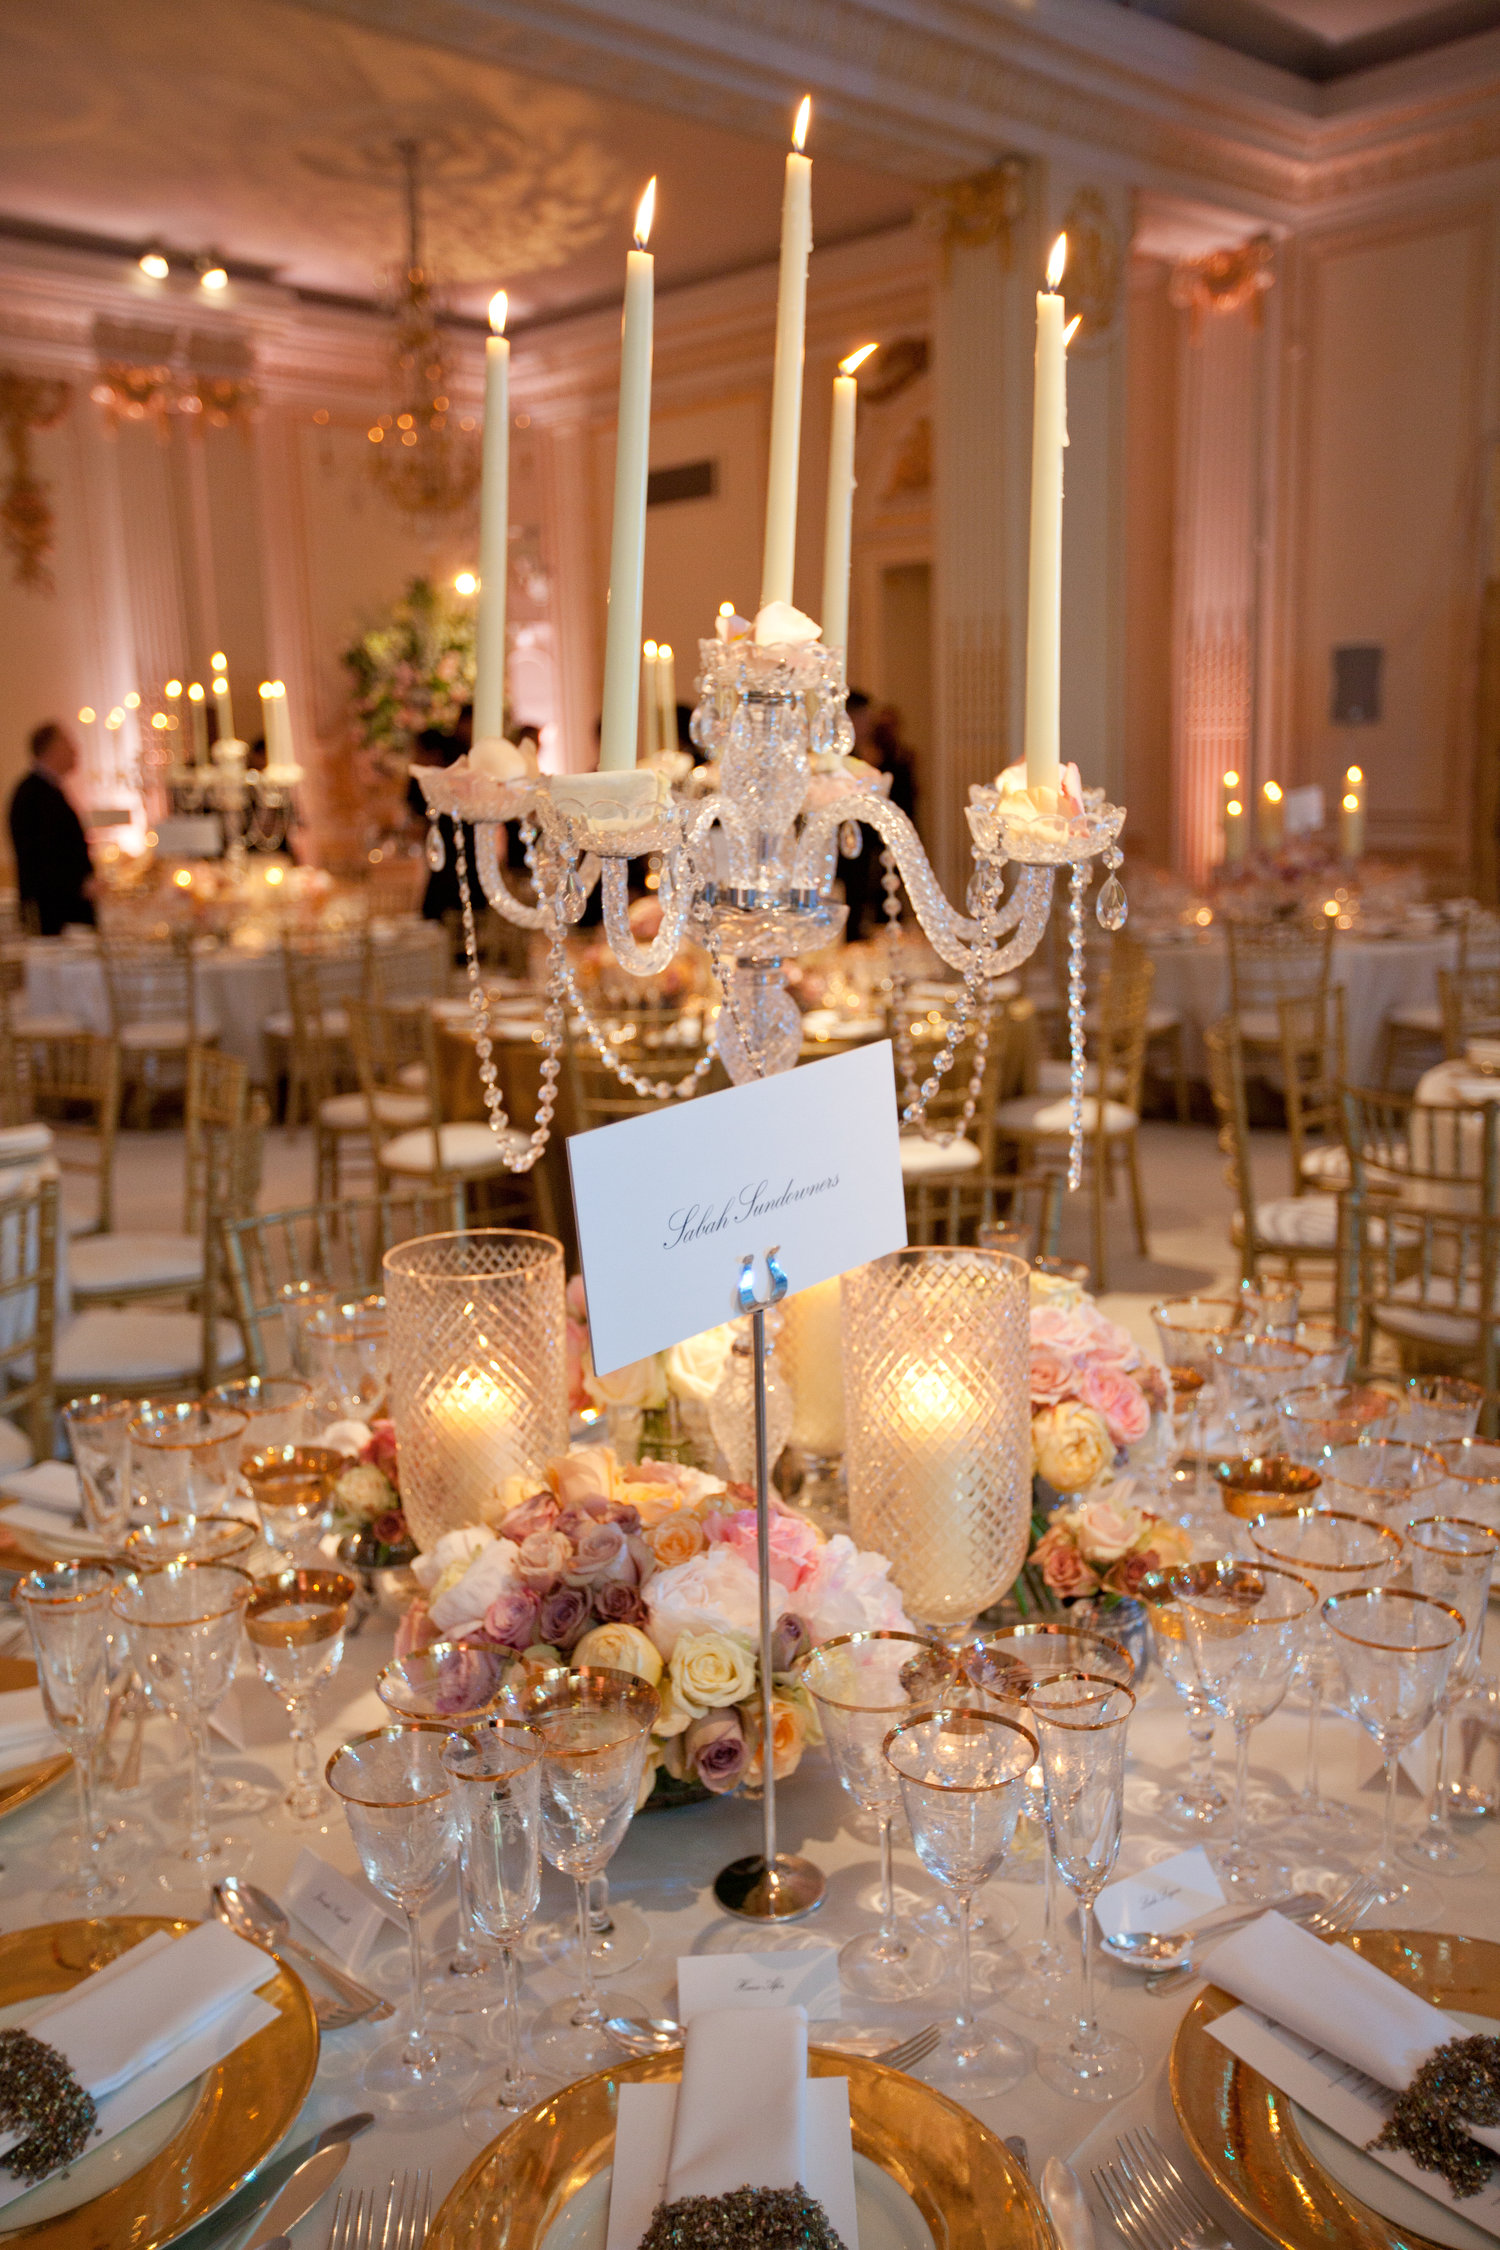 wedding table display.jpg